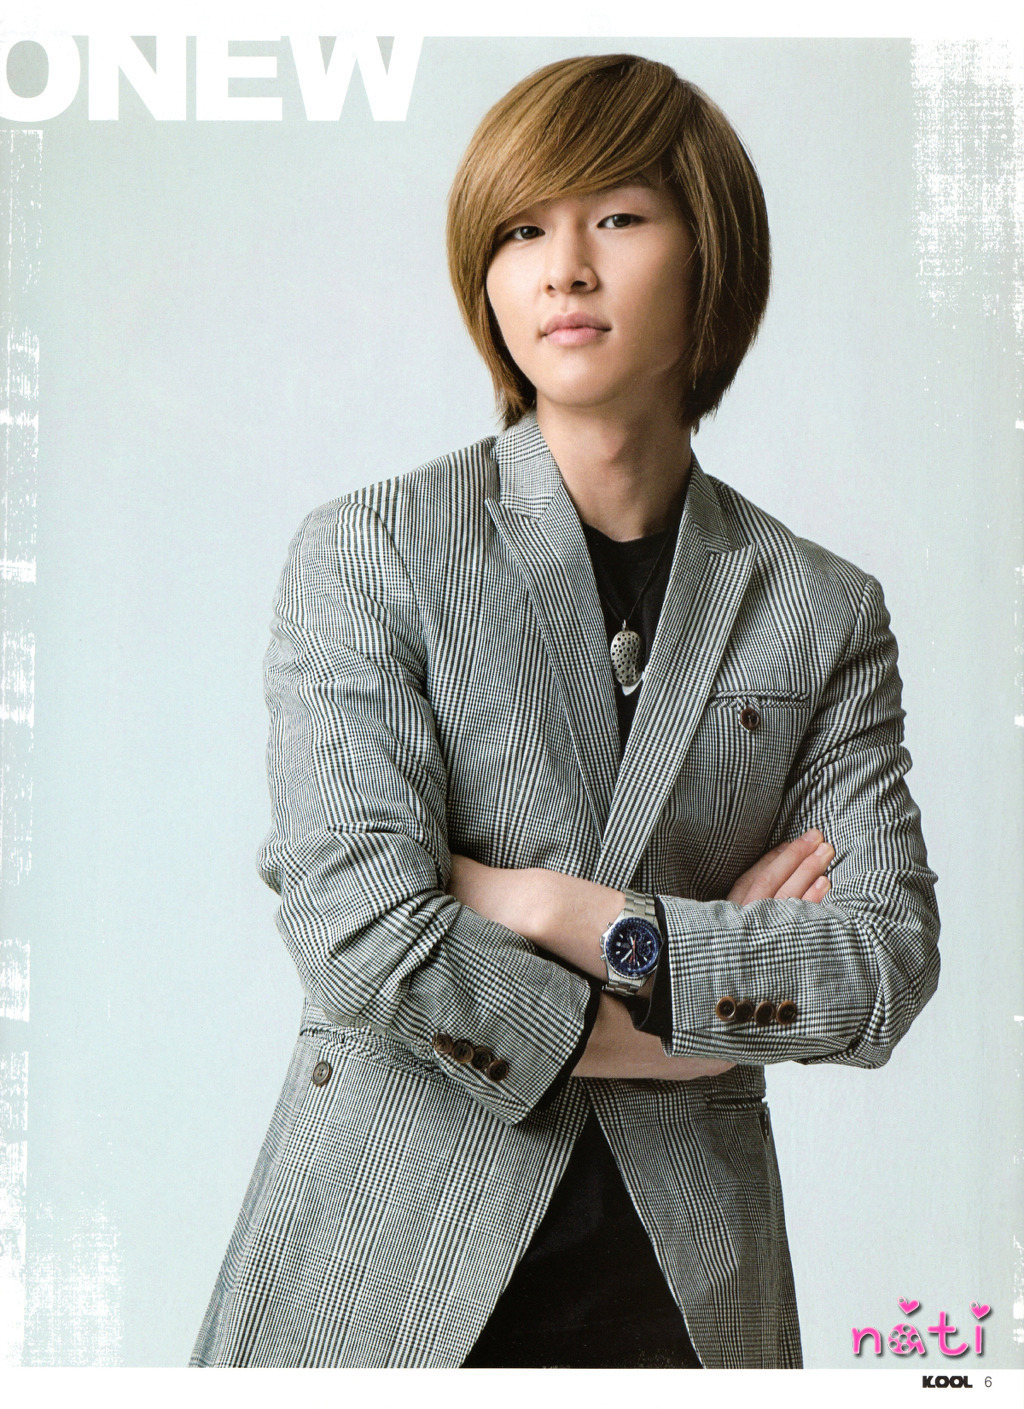 http://images4.fanpop.com/image/photos/17500000/onew-shinee-17530813-1024-1409.jpg